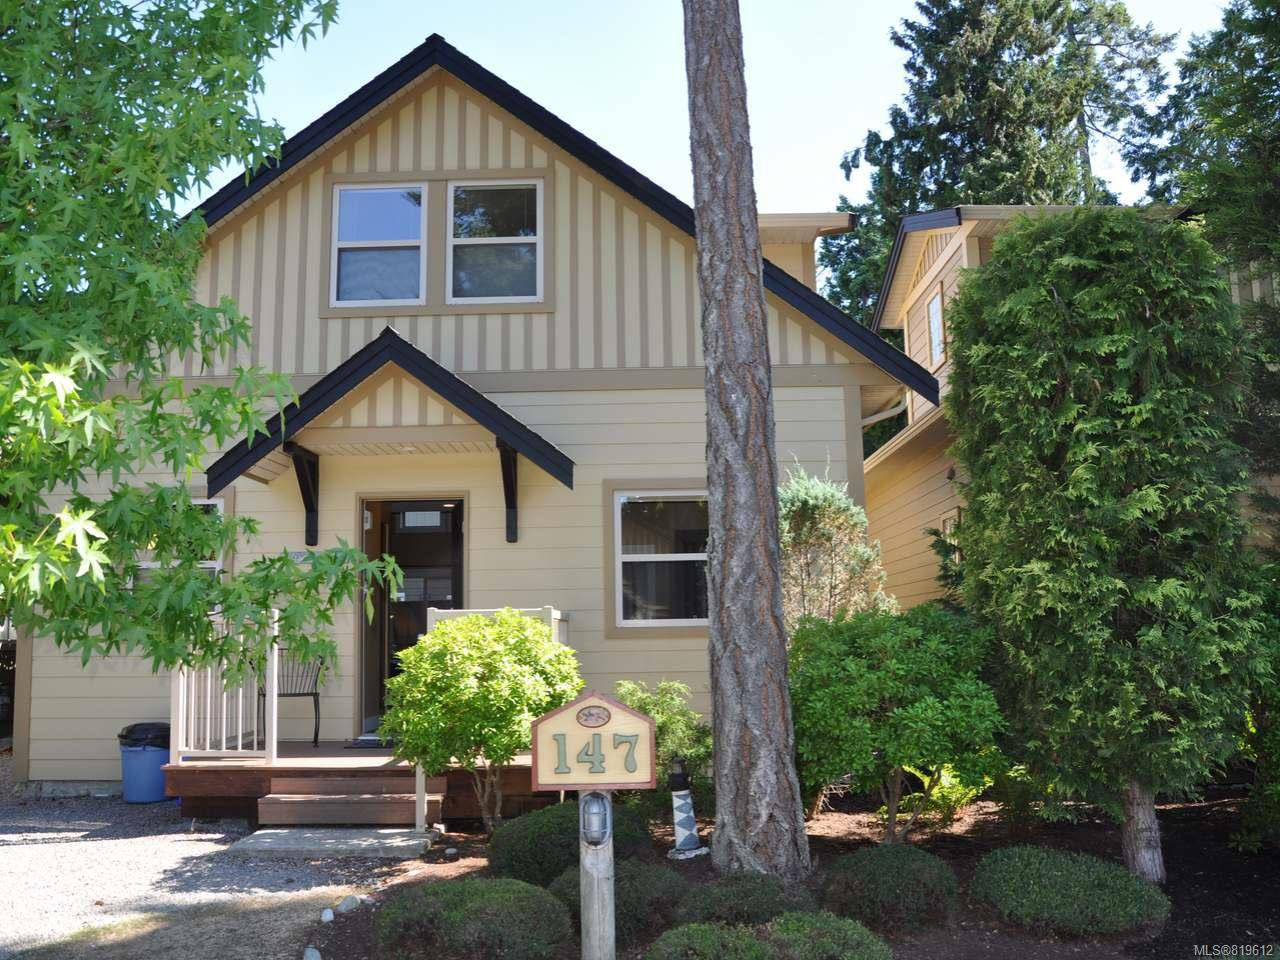 Main Photo: 147 1080 Resort Dr in PARKSVILLE: PQ Parksville Row/Townhouse for sale (Parksville/Qualicum)  : MLS®# 819612